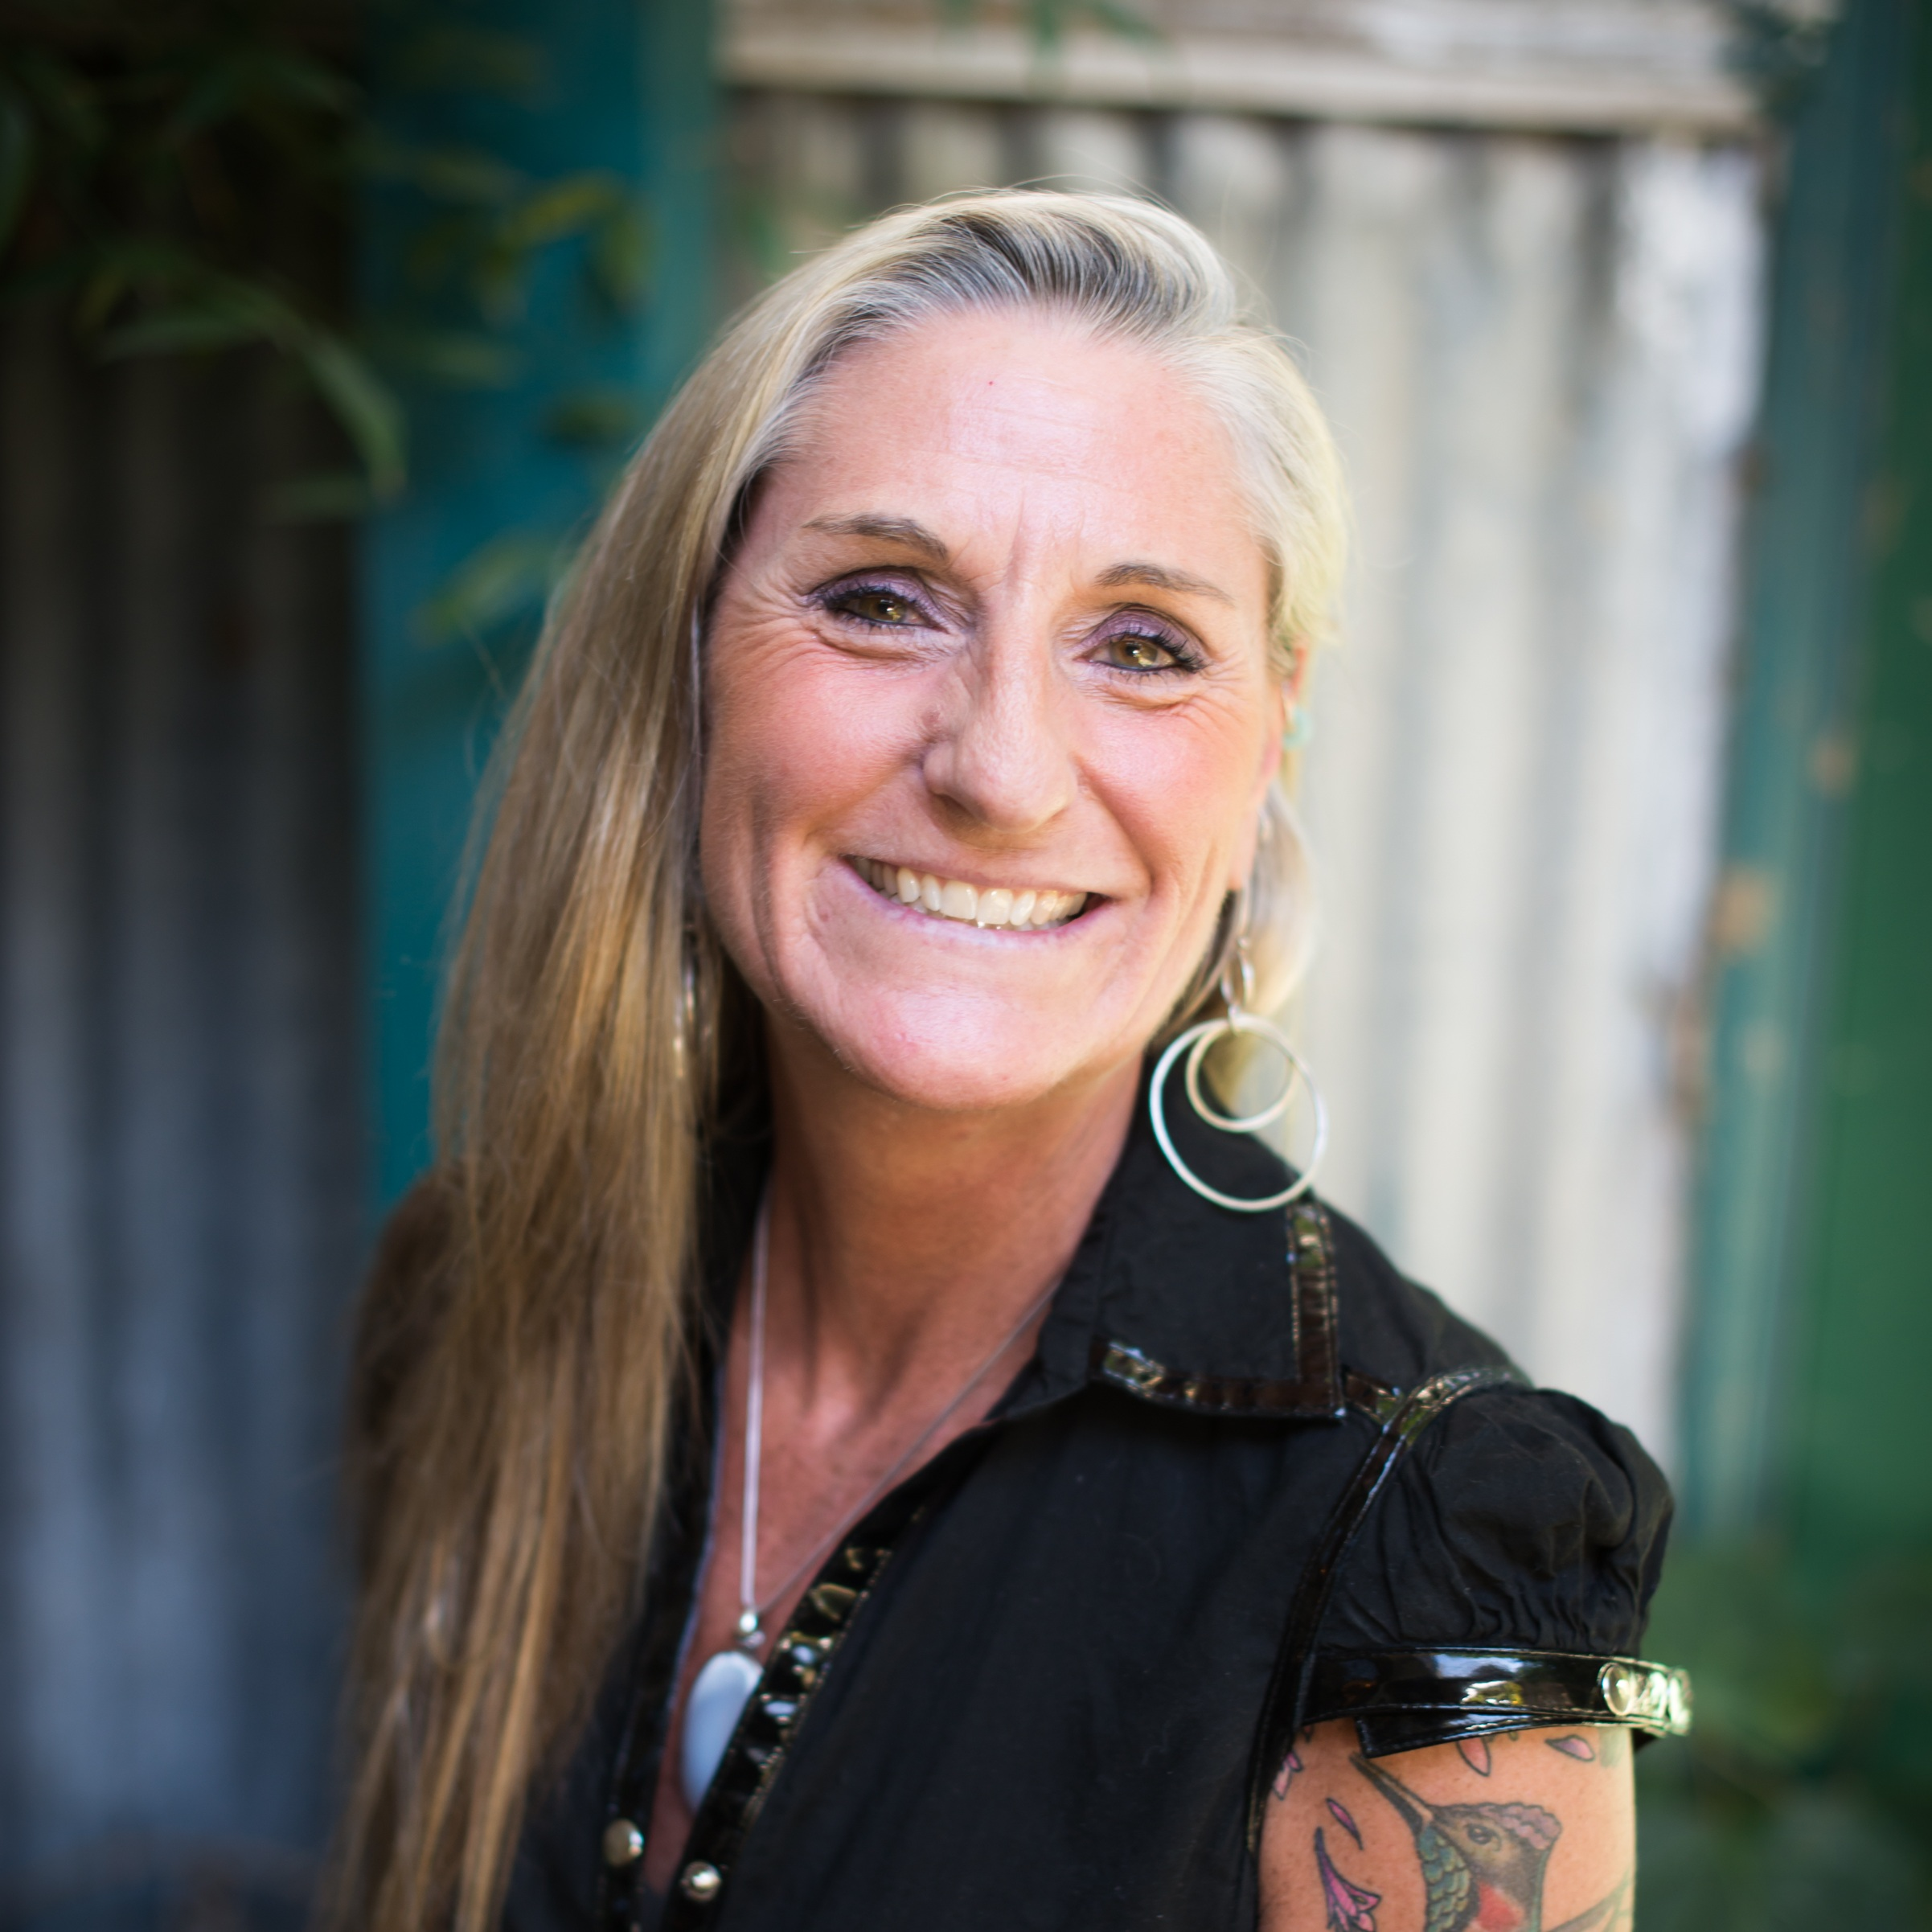 DR AUDRA FOSTER  This firecracker naturopathic doctor will be taking her 3rd journey with us to Nepal this year. She'll lead our Women's Health team and will teach clinical skills for gynecologic complaints.